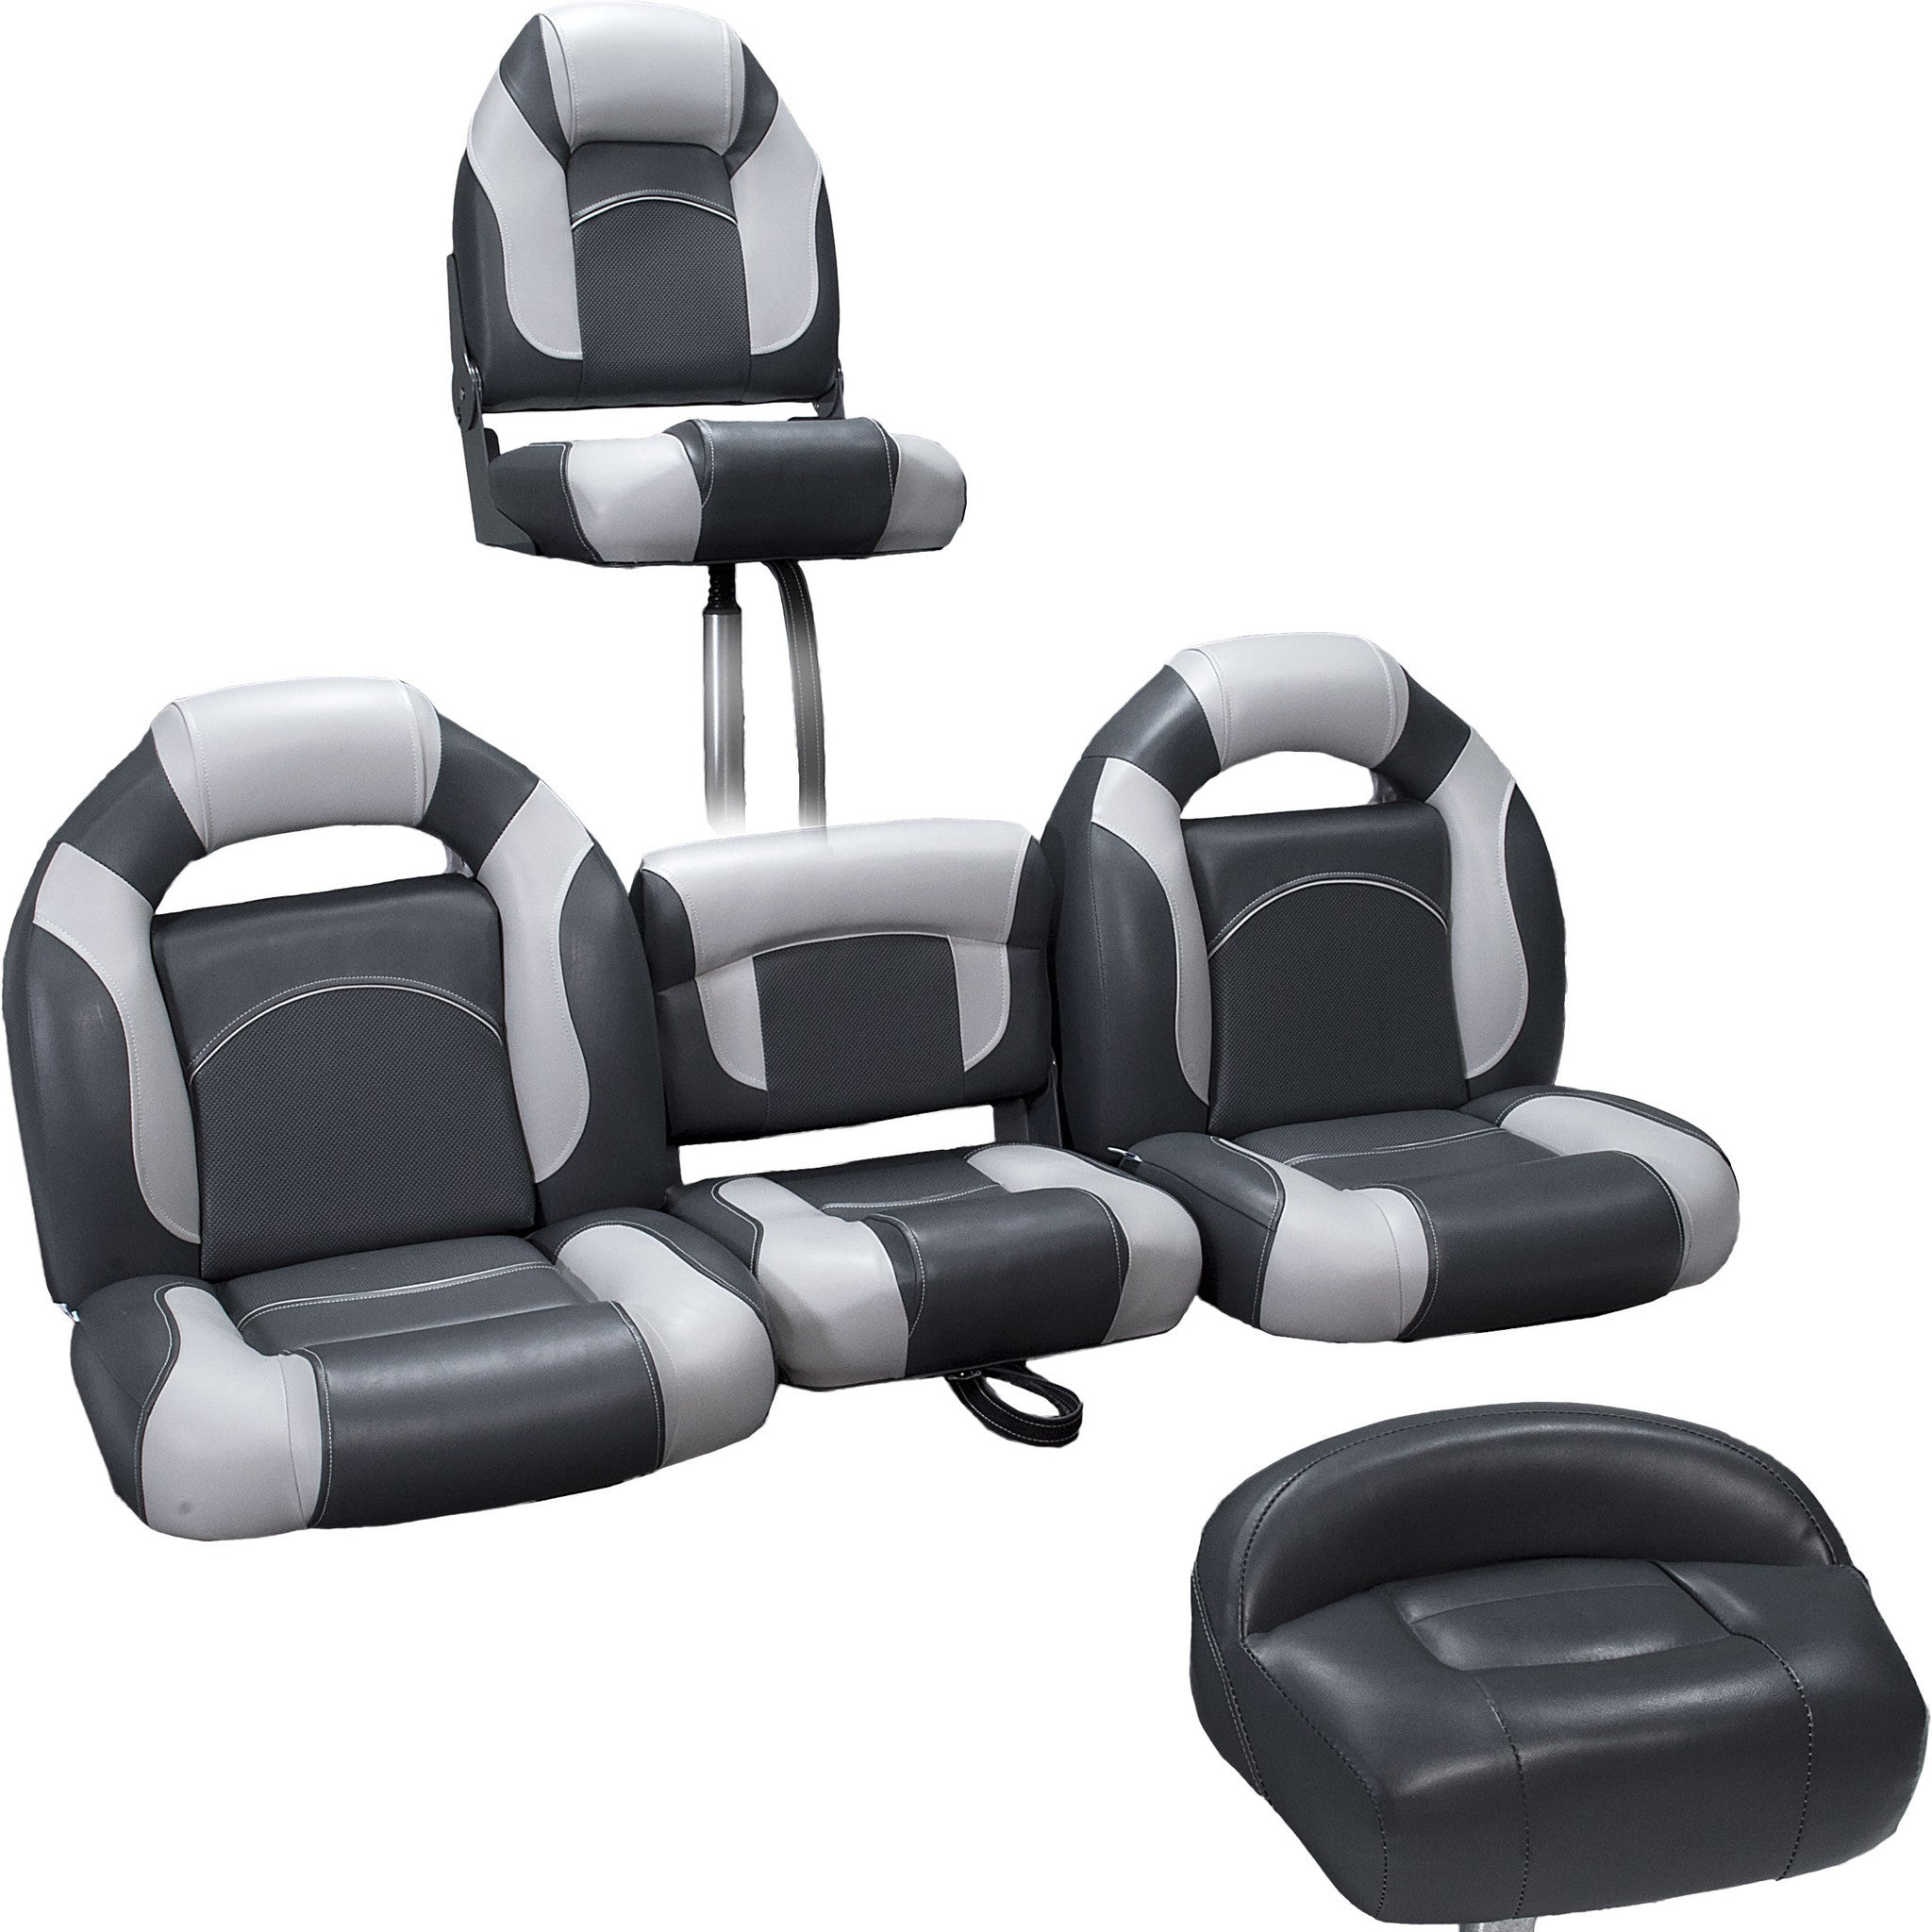 overload center boats chairs edition le boat chair consoles option rearseatdetail luxury seavee